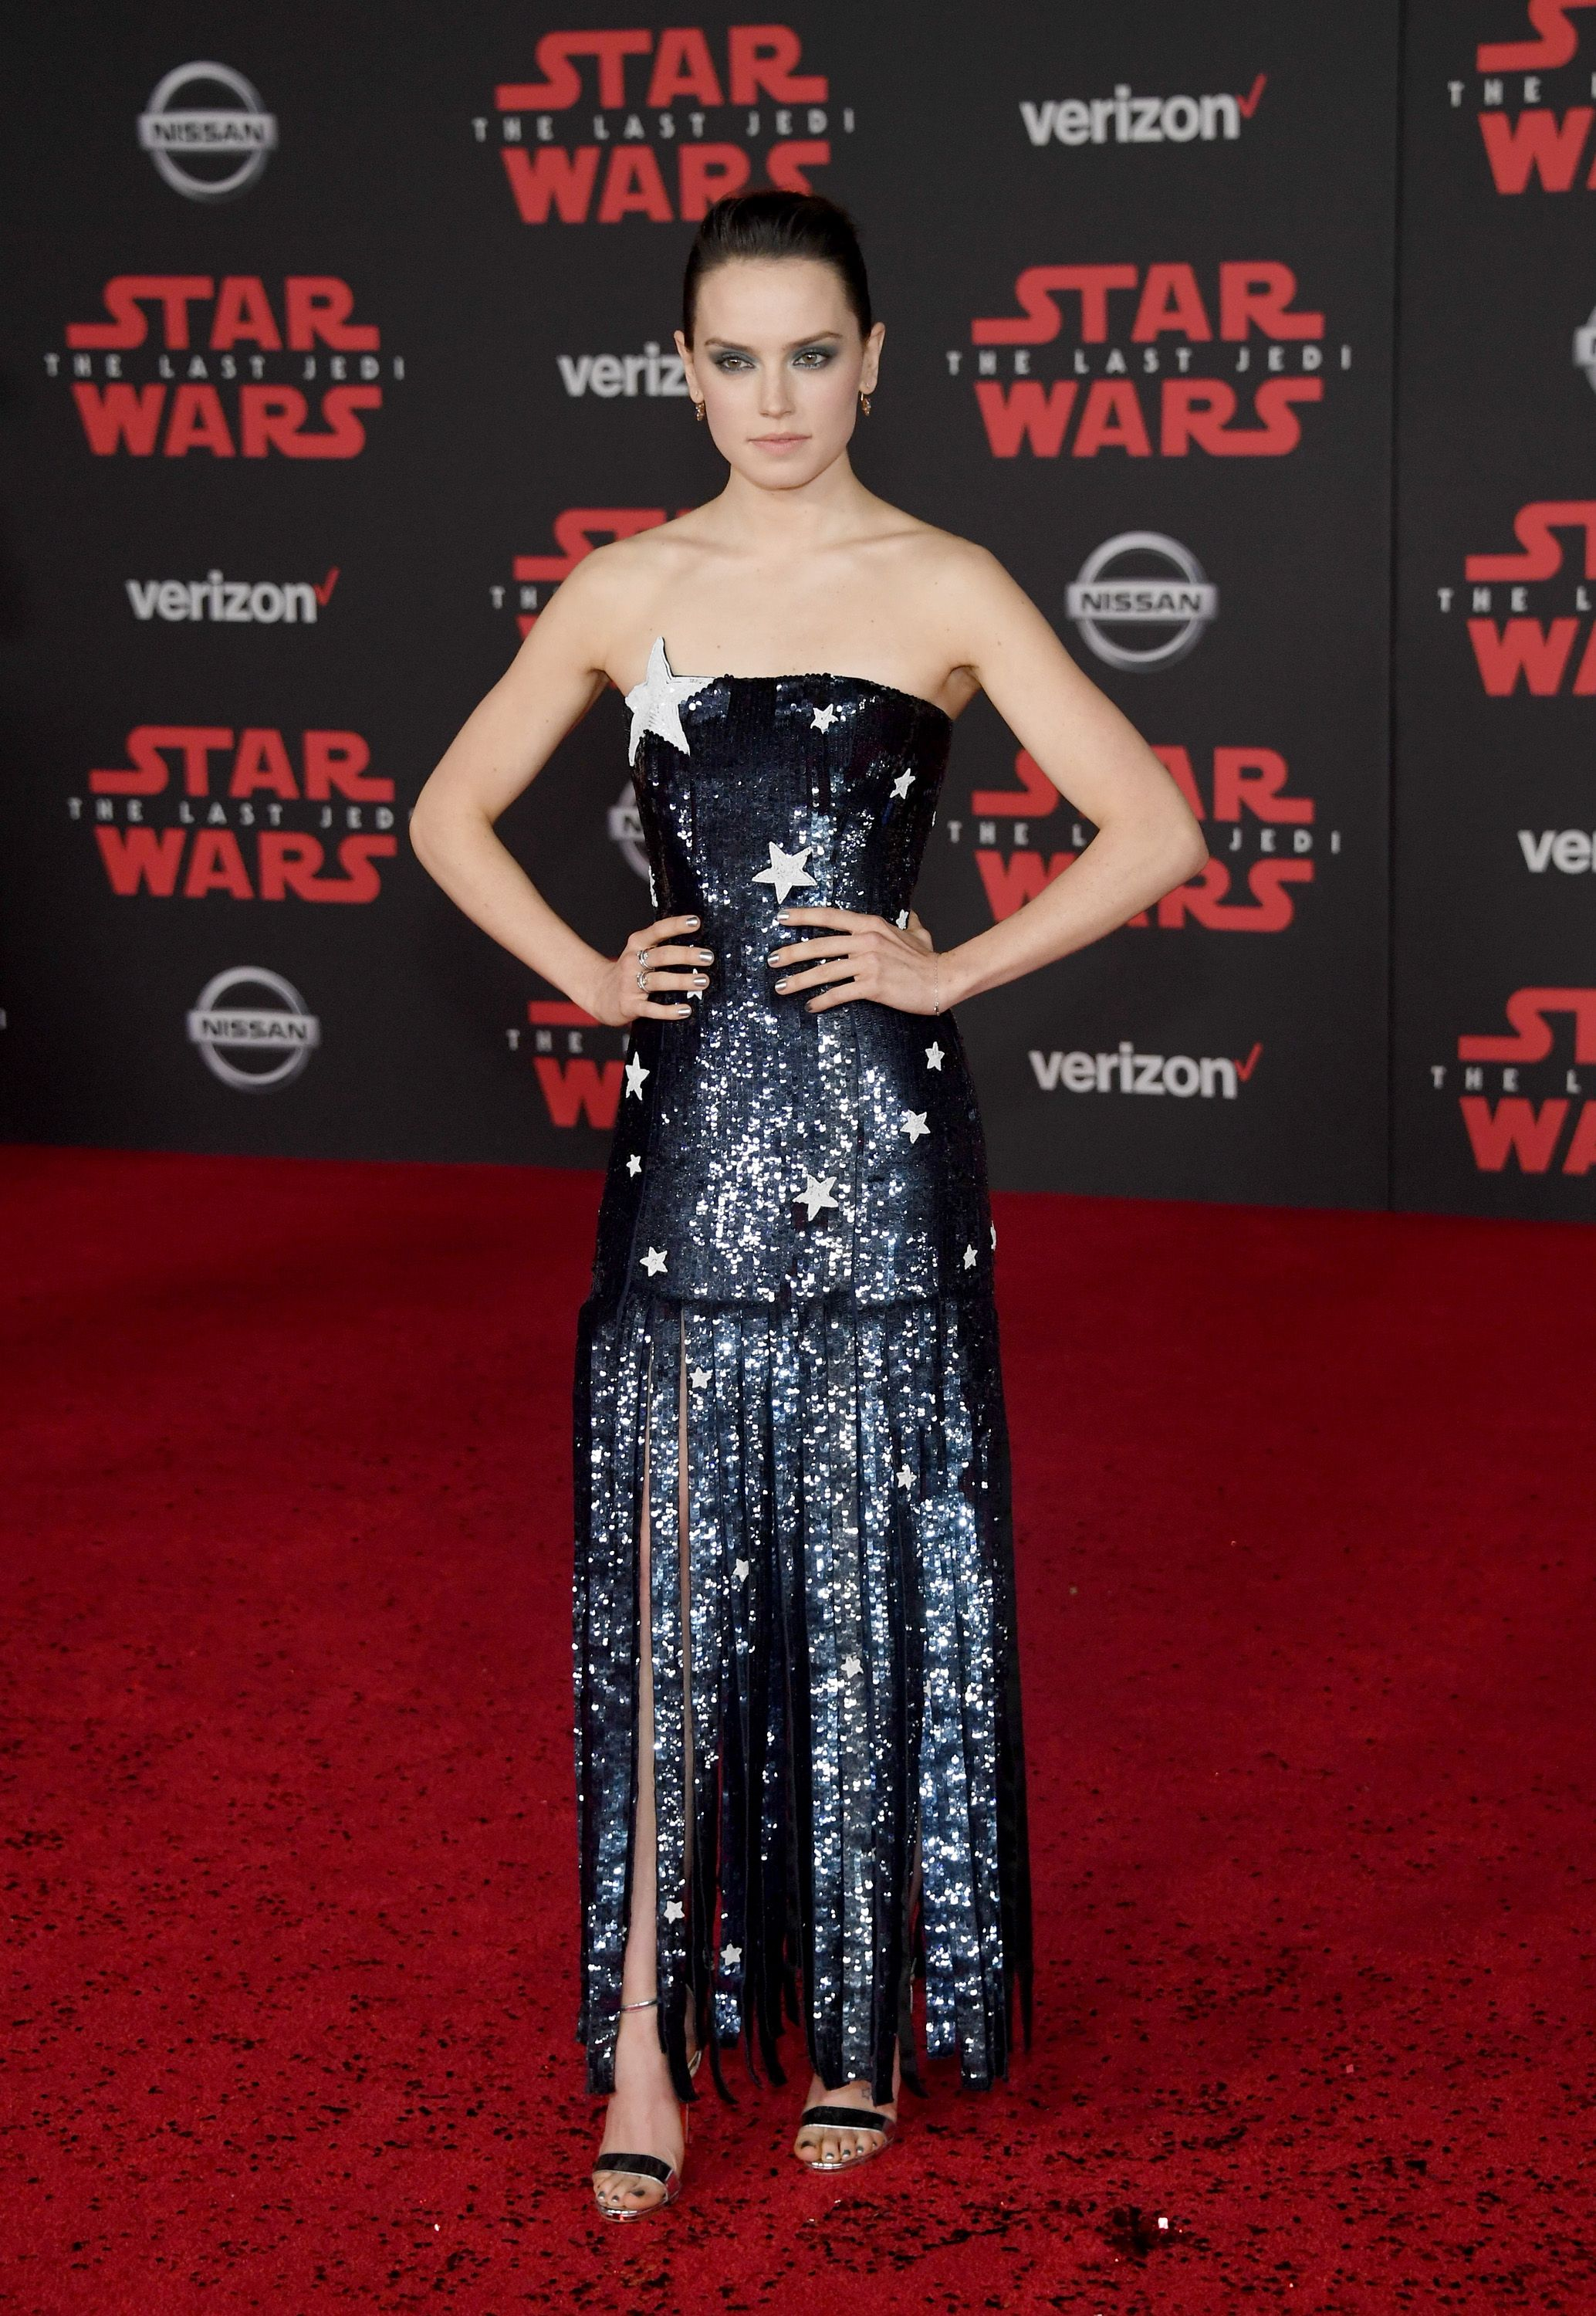 Pin By Baxmus Skywalker On Daisy Ridley With Images Daisy Ridley Hot